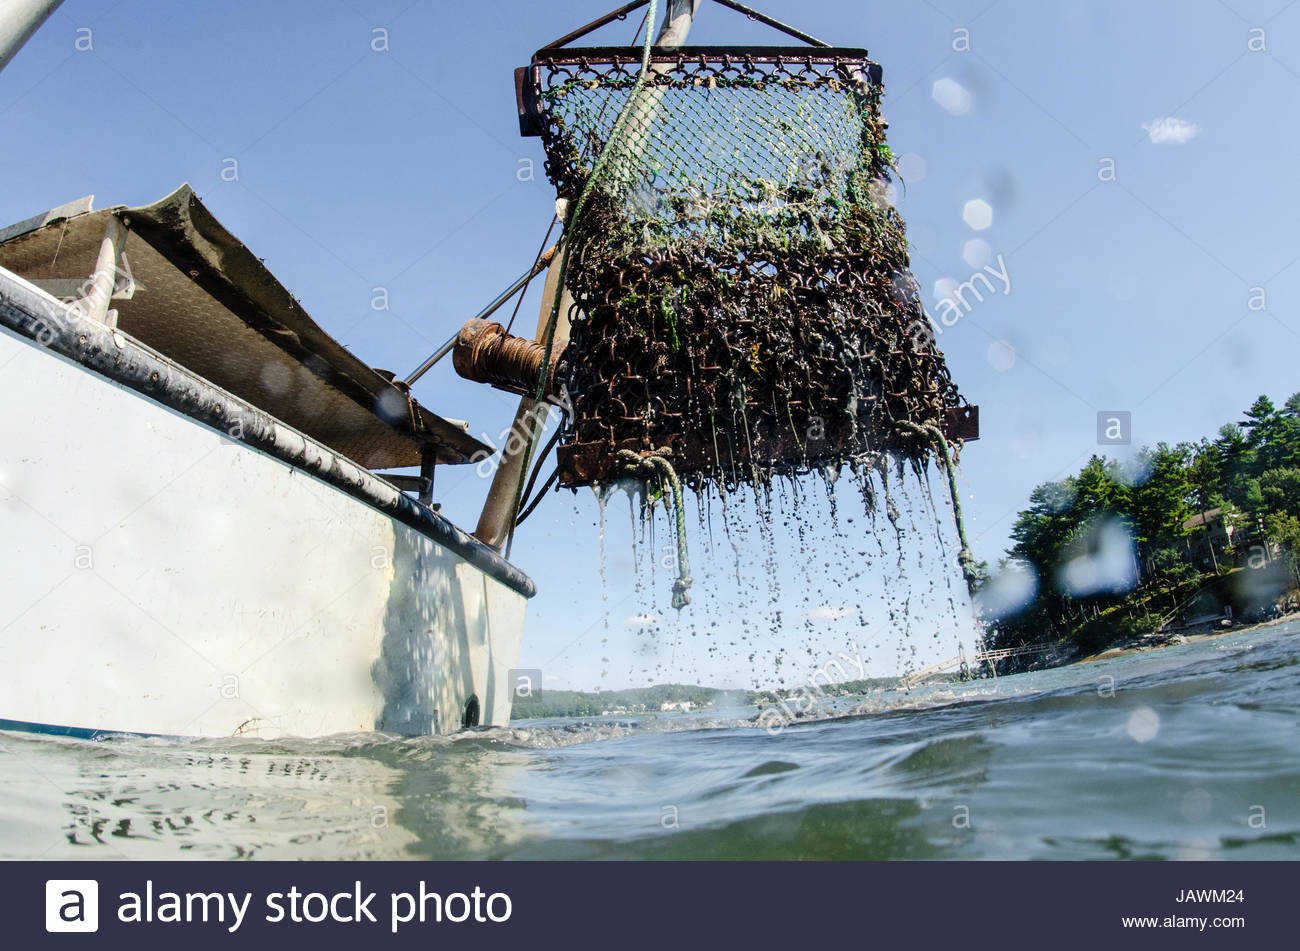 A chain link basket is brought up from the river bed full of oysters and dripping with muddy water. Stock Photo